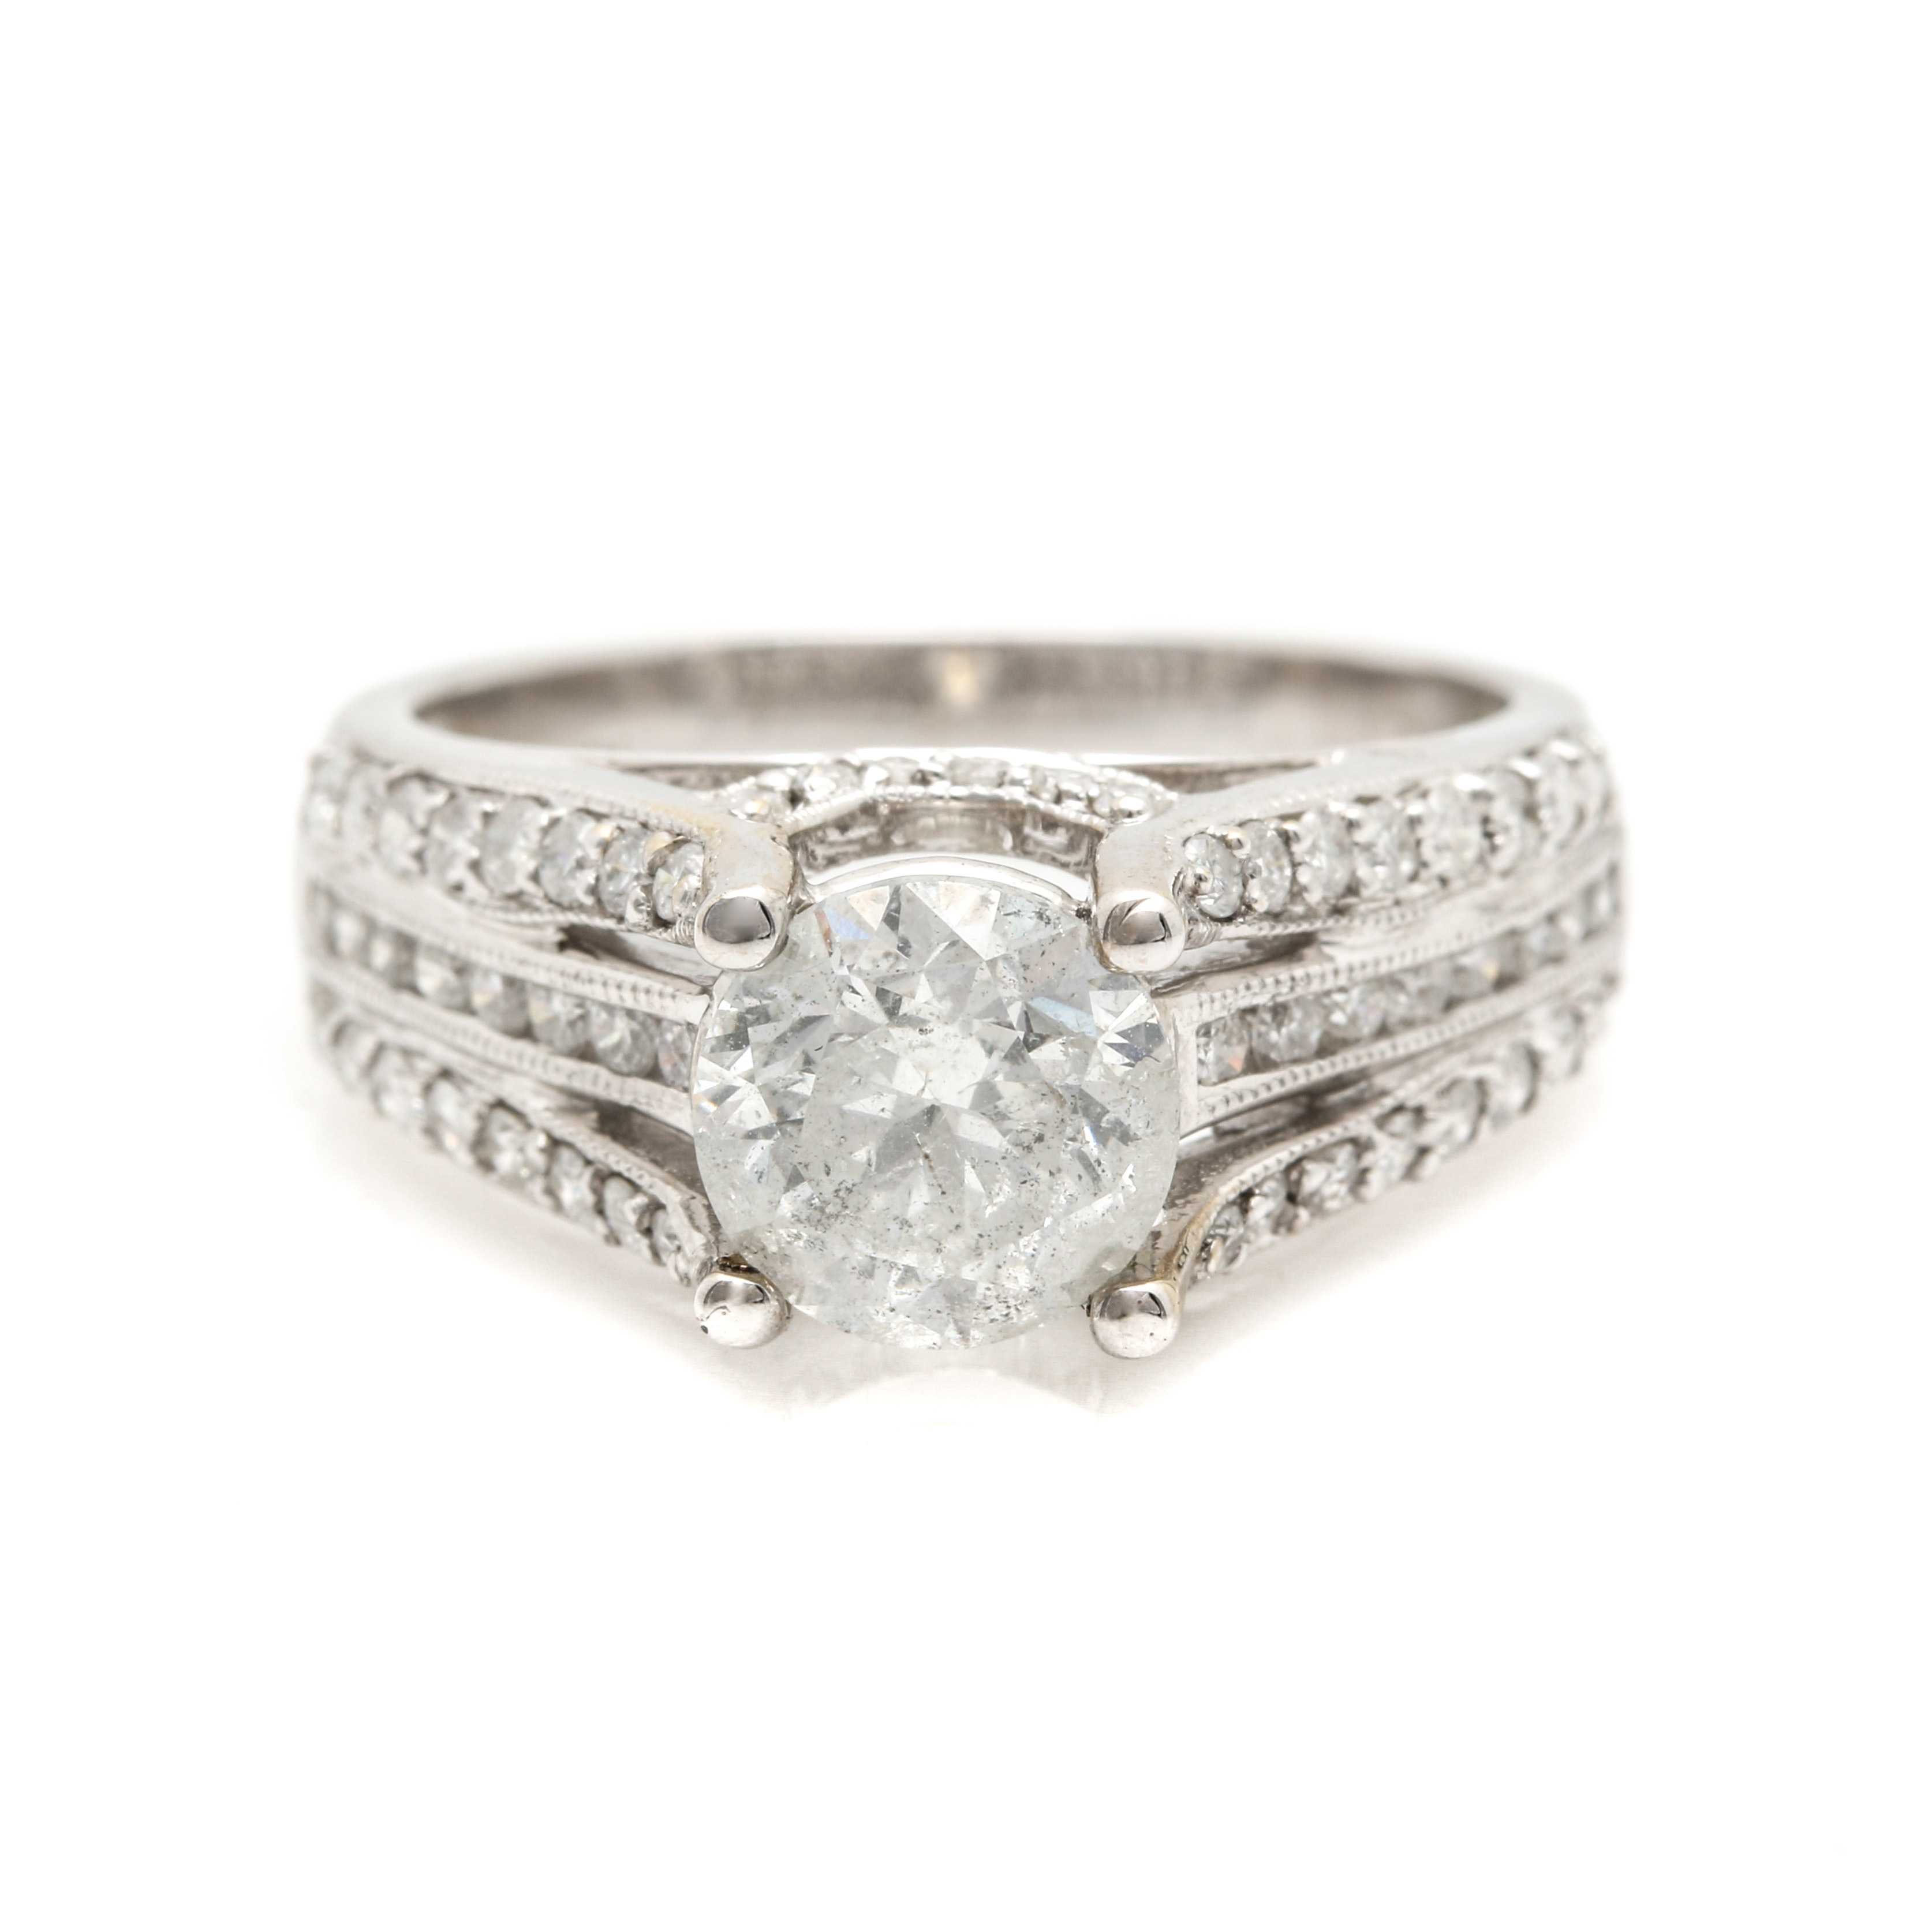 18K White Gold 2.39 CTW Diamond Ring